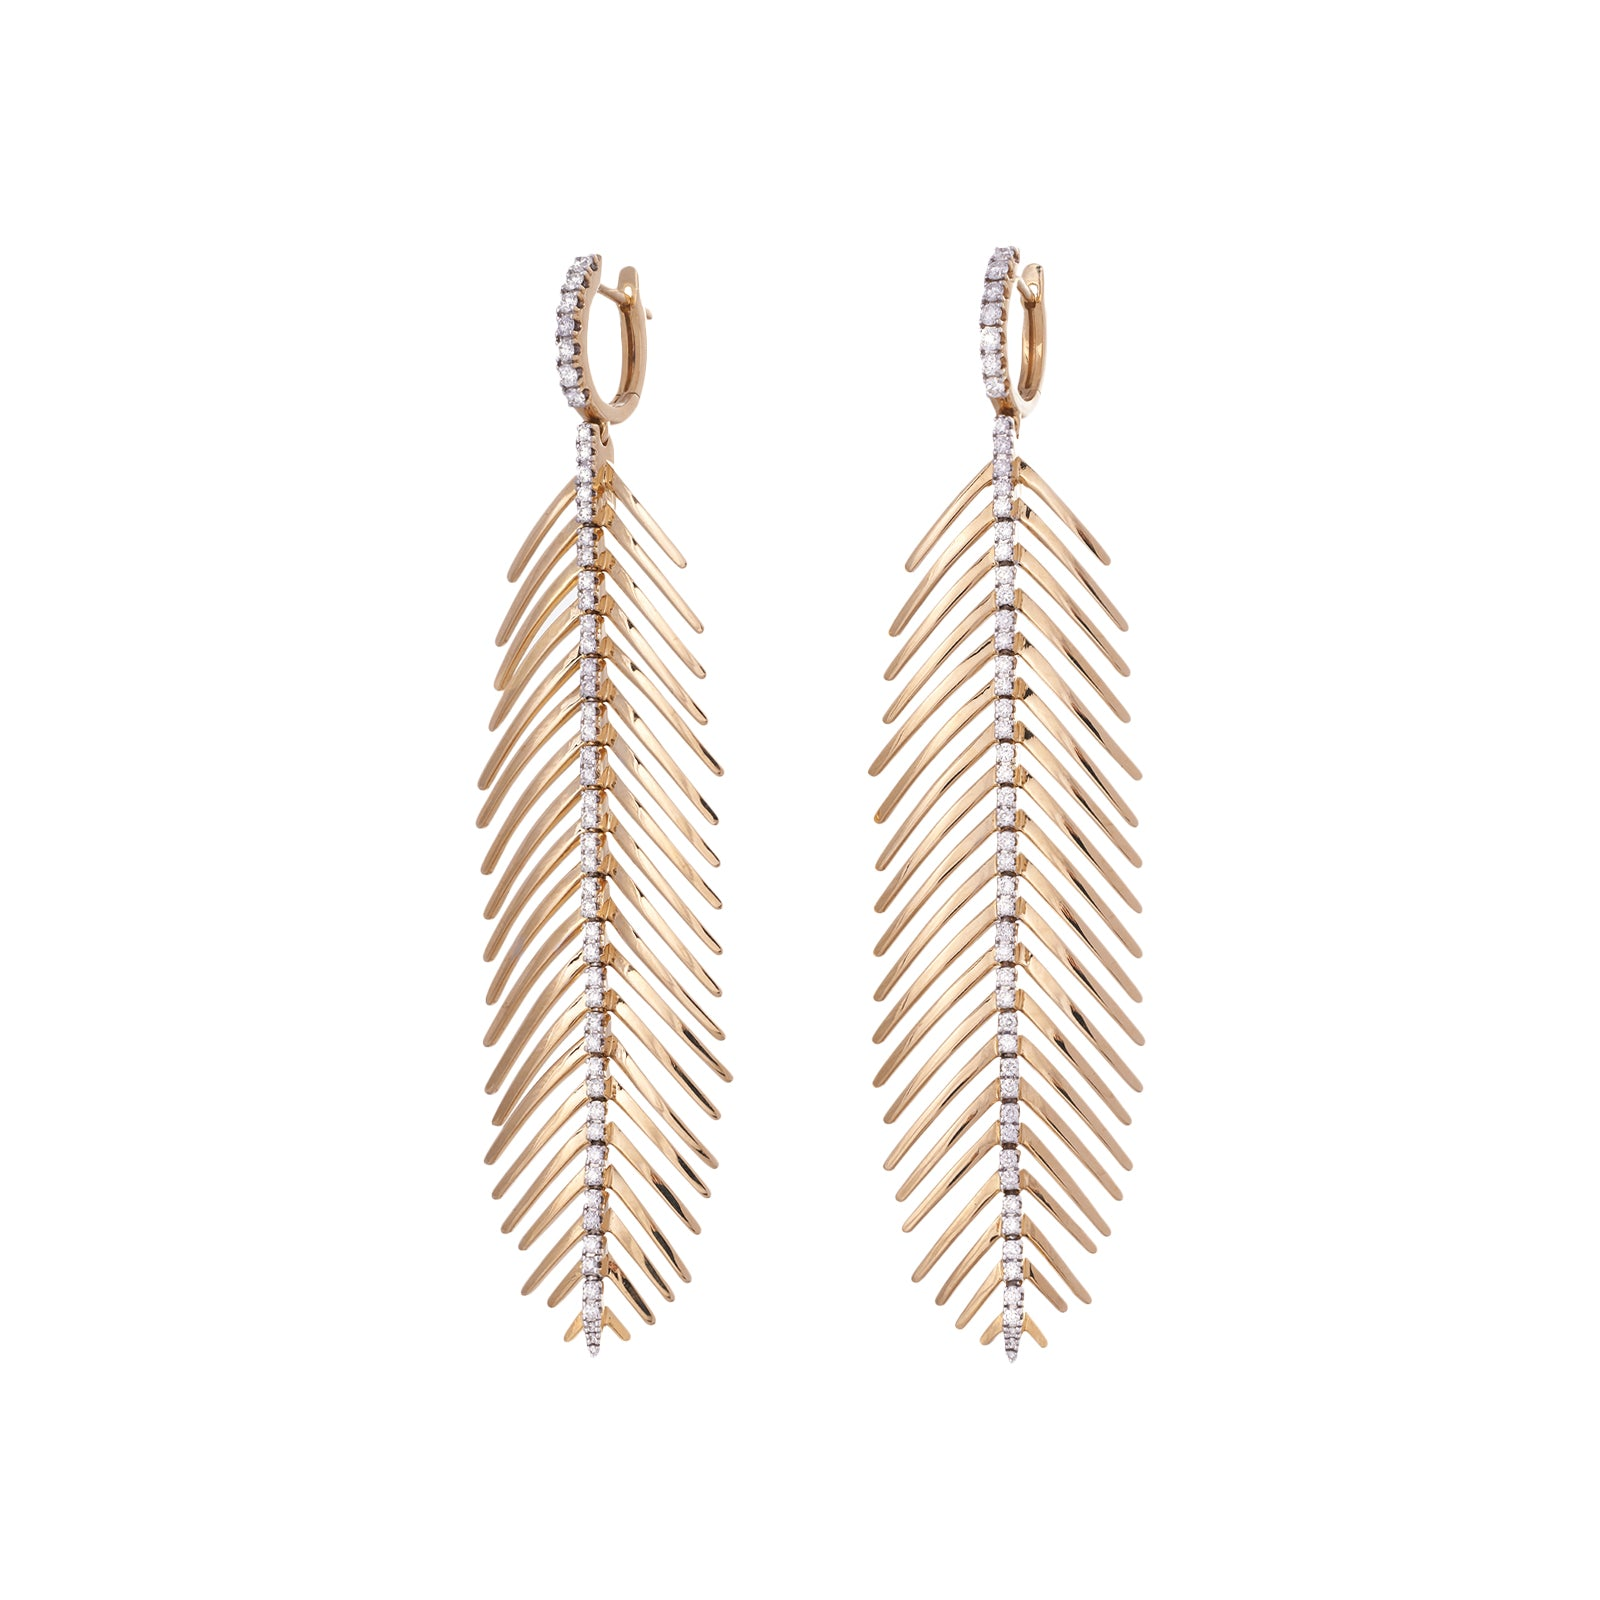 Sidney Garber Feathers That Move Earrings - Rose Gold - Earrings - Broken English Jewelry